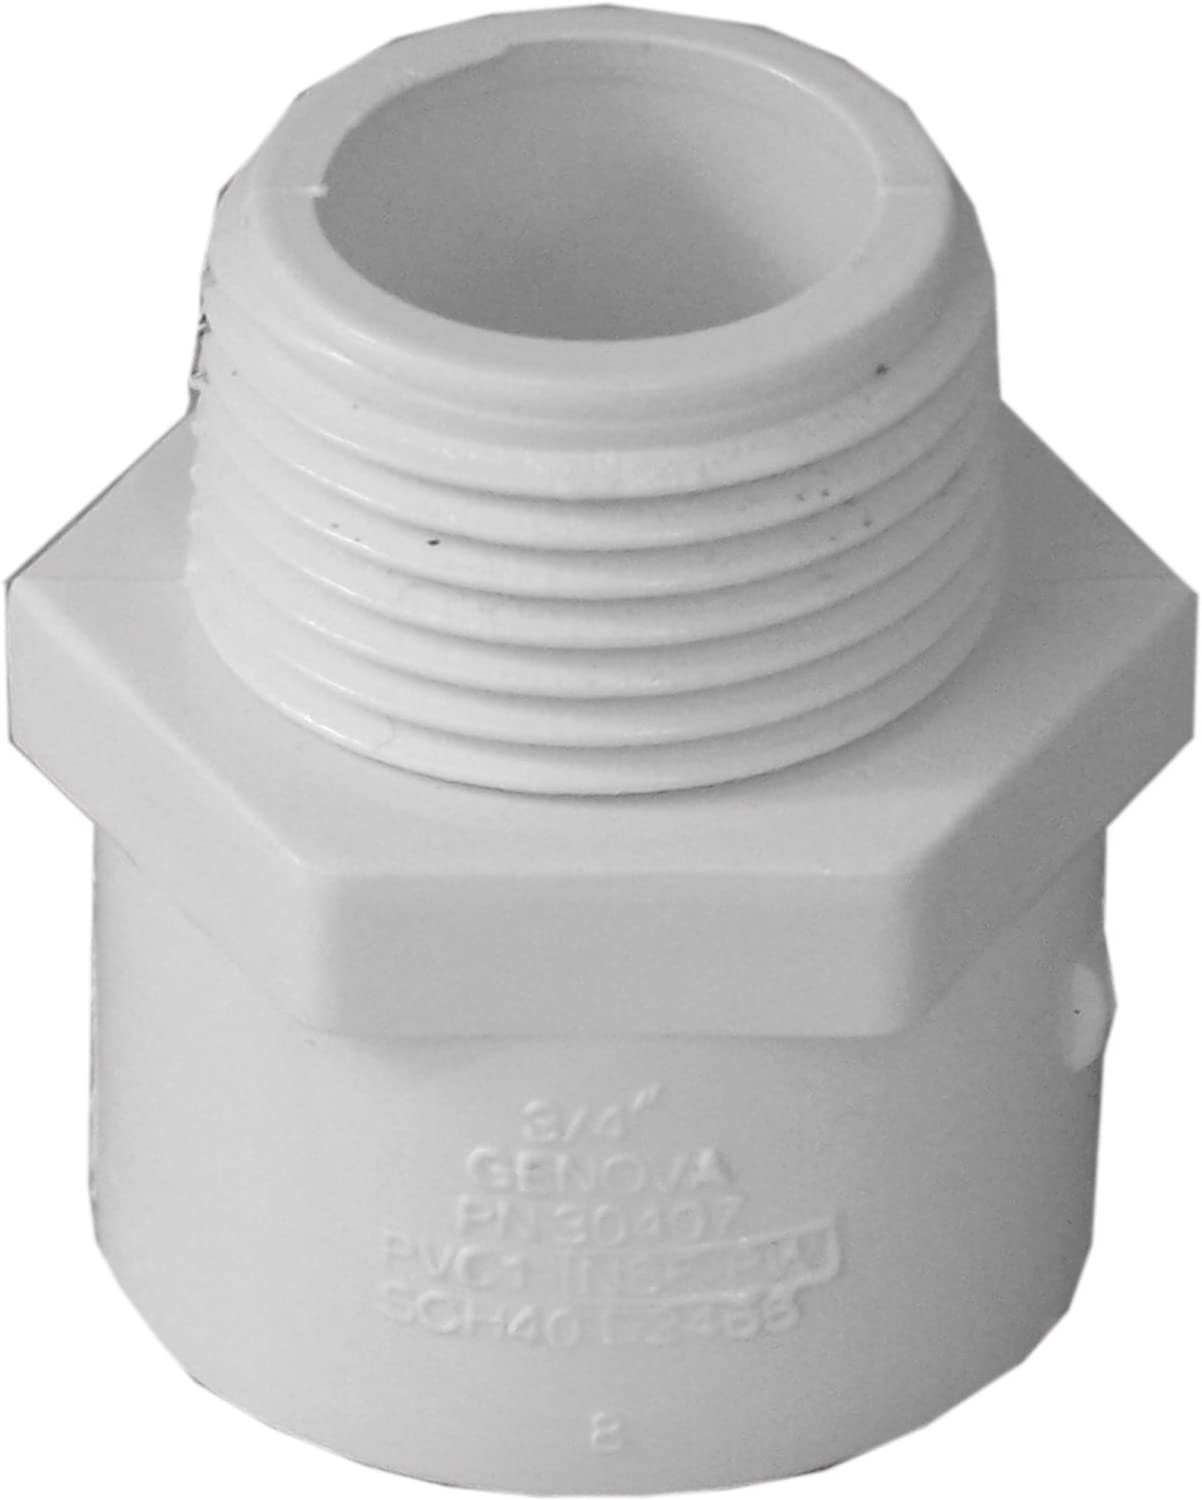 Male Adapter 3//4-In 30407 PVC Pressure Pipe Fitting White PVC - Quantity 10